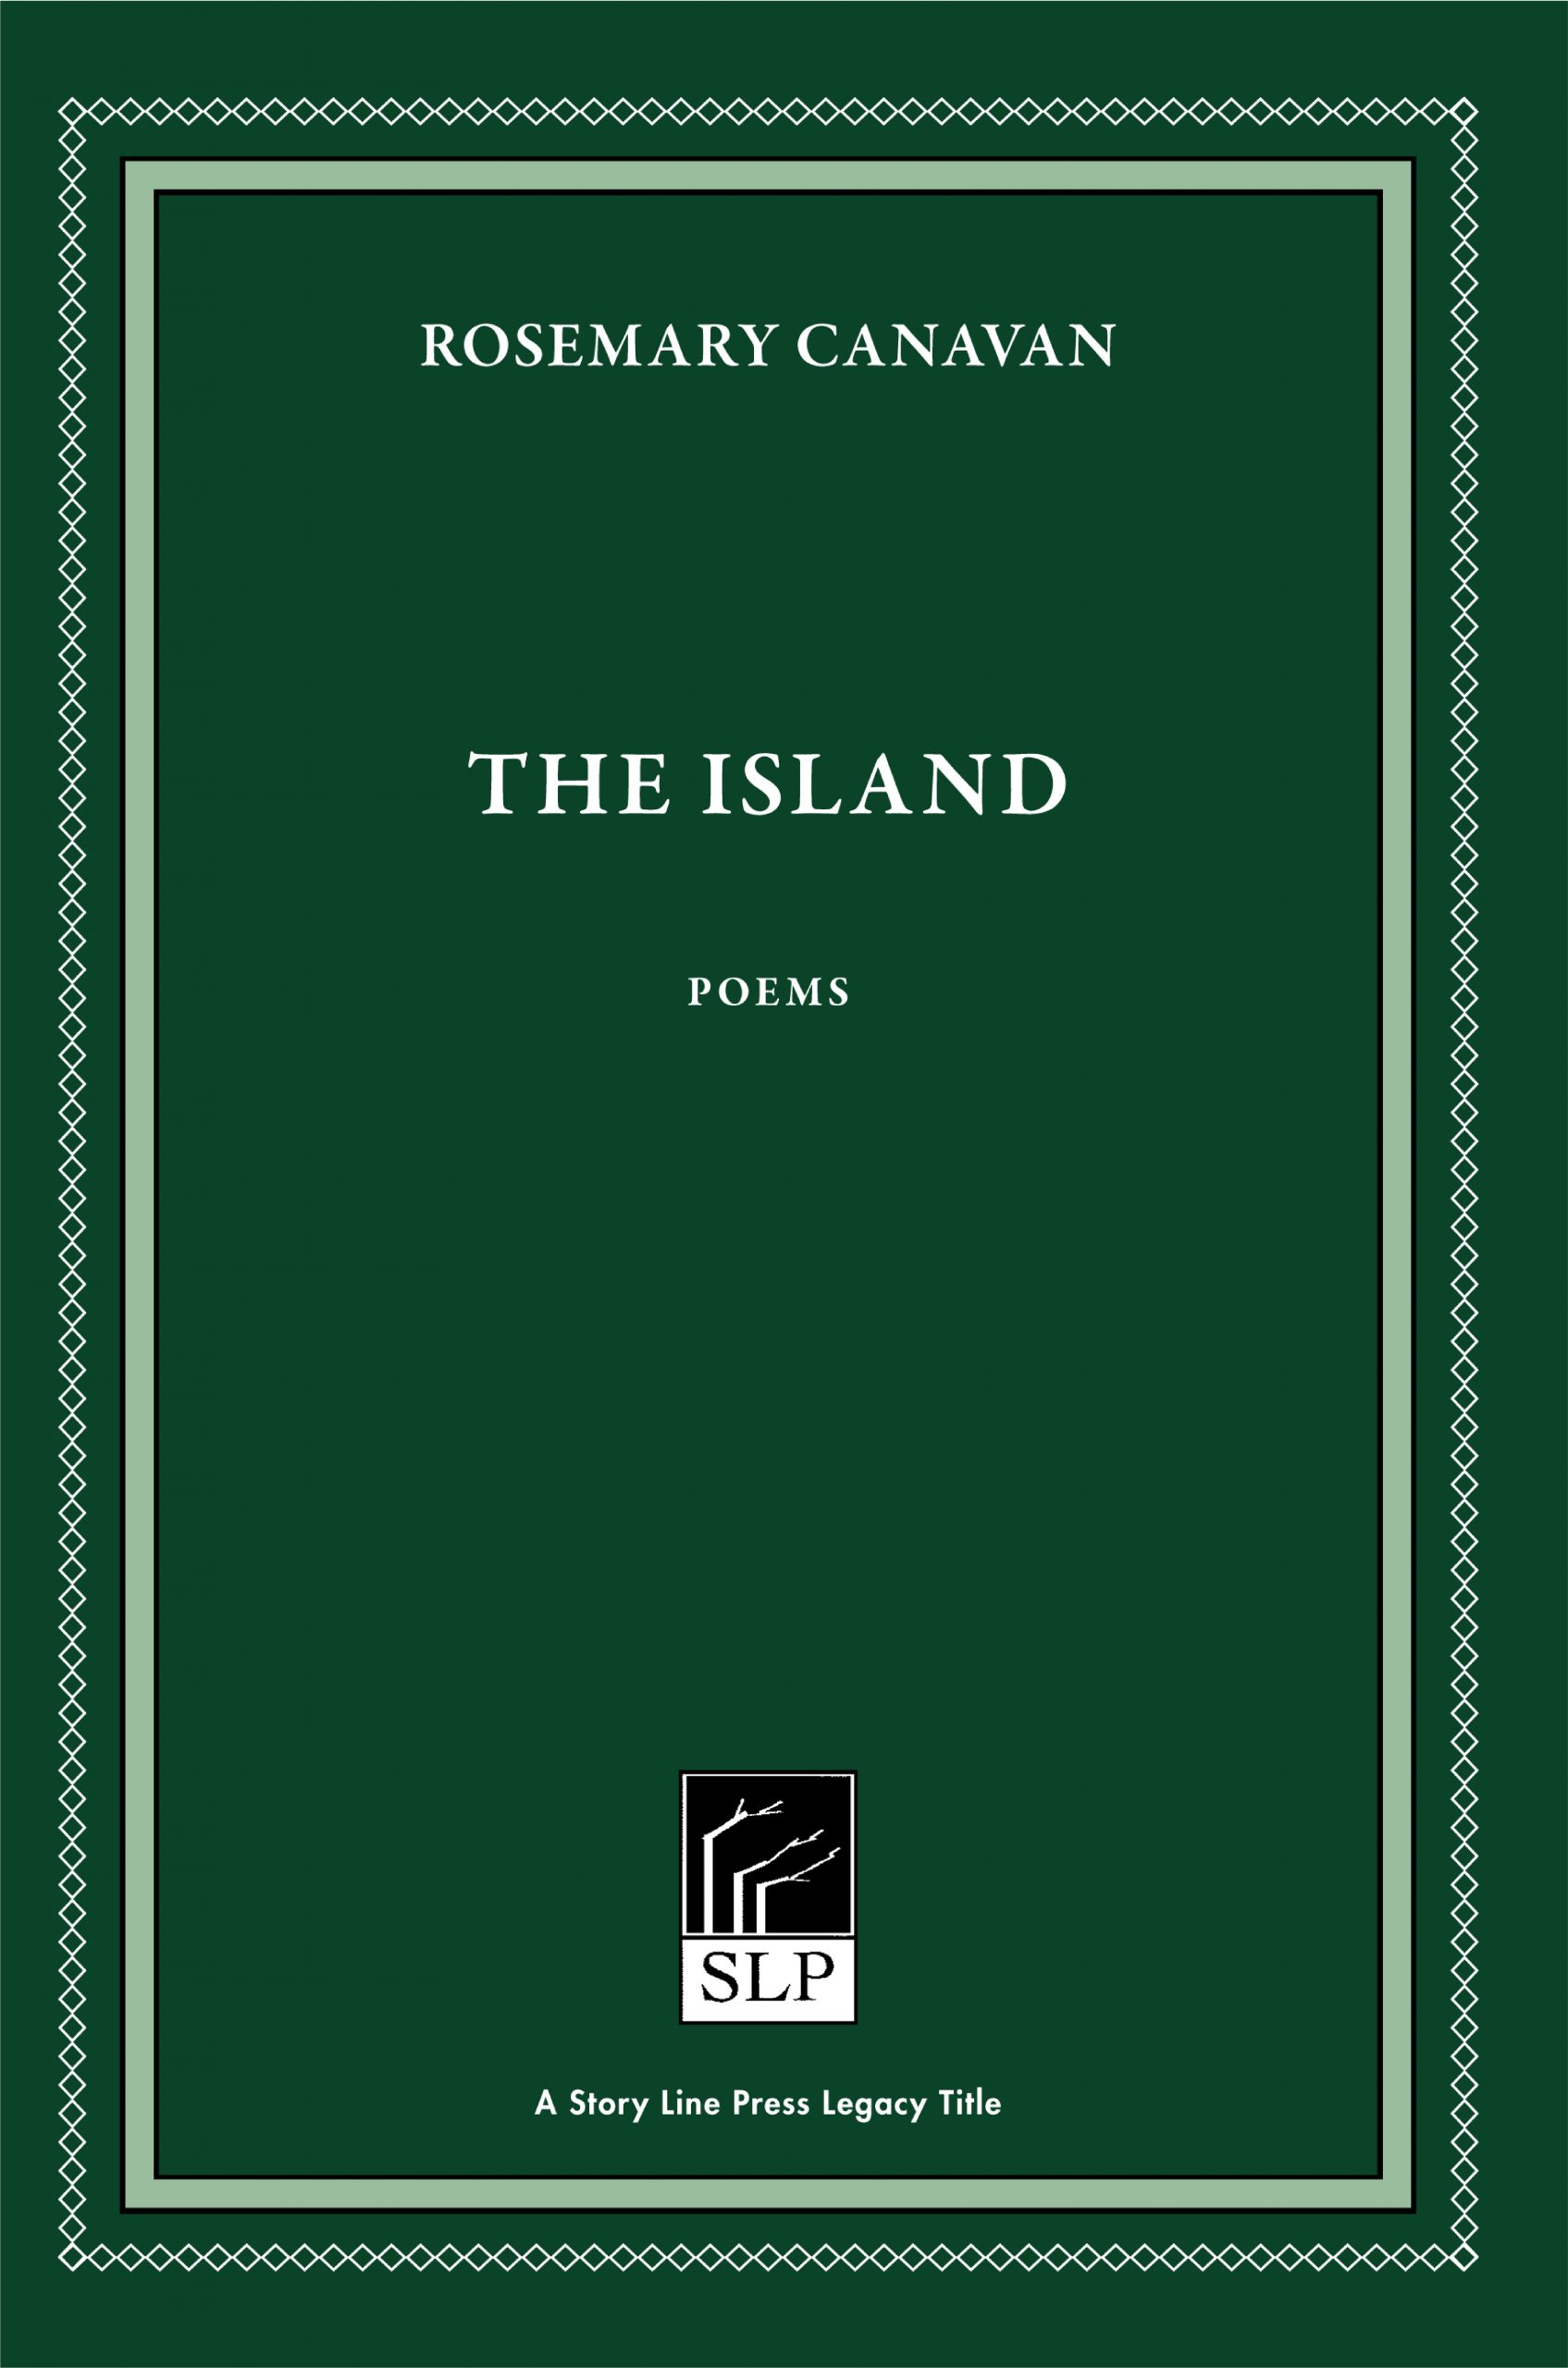 Story Line Press legacy tittle, Rosemary Canavan The Island Poems, white script text against emerald green background.